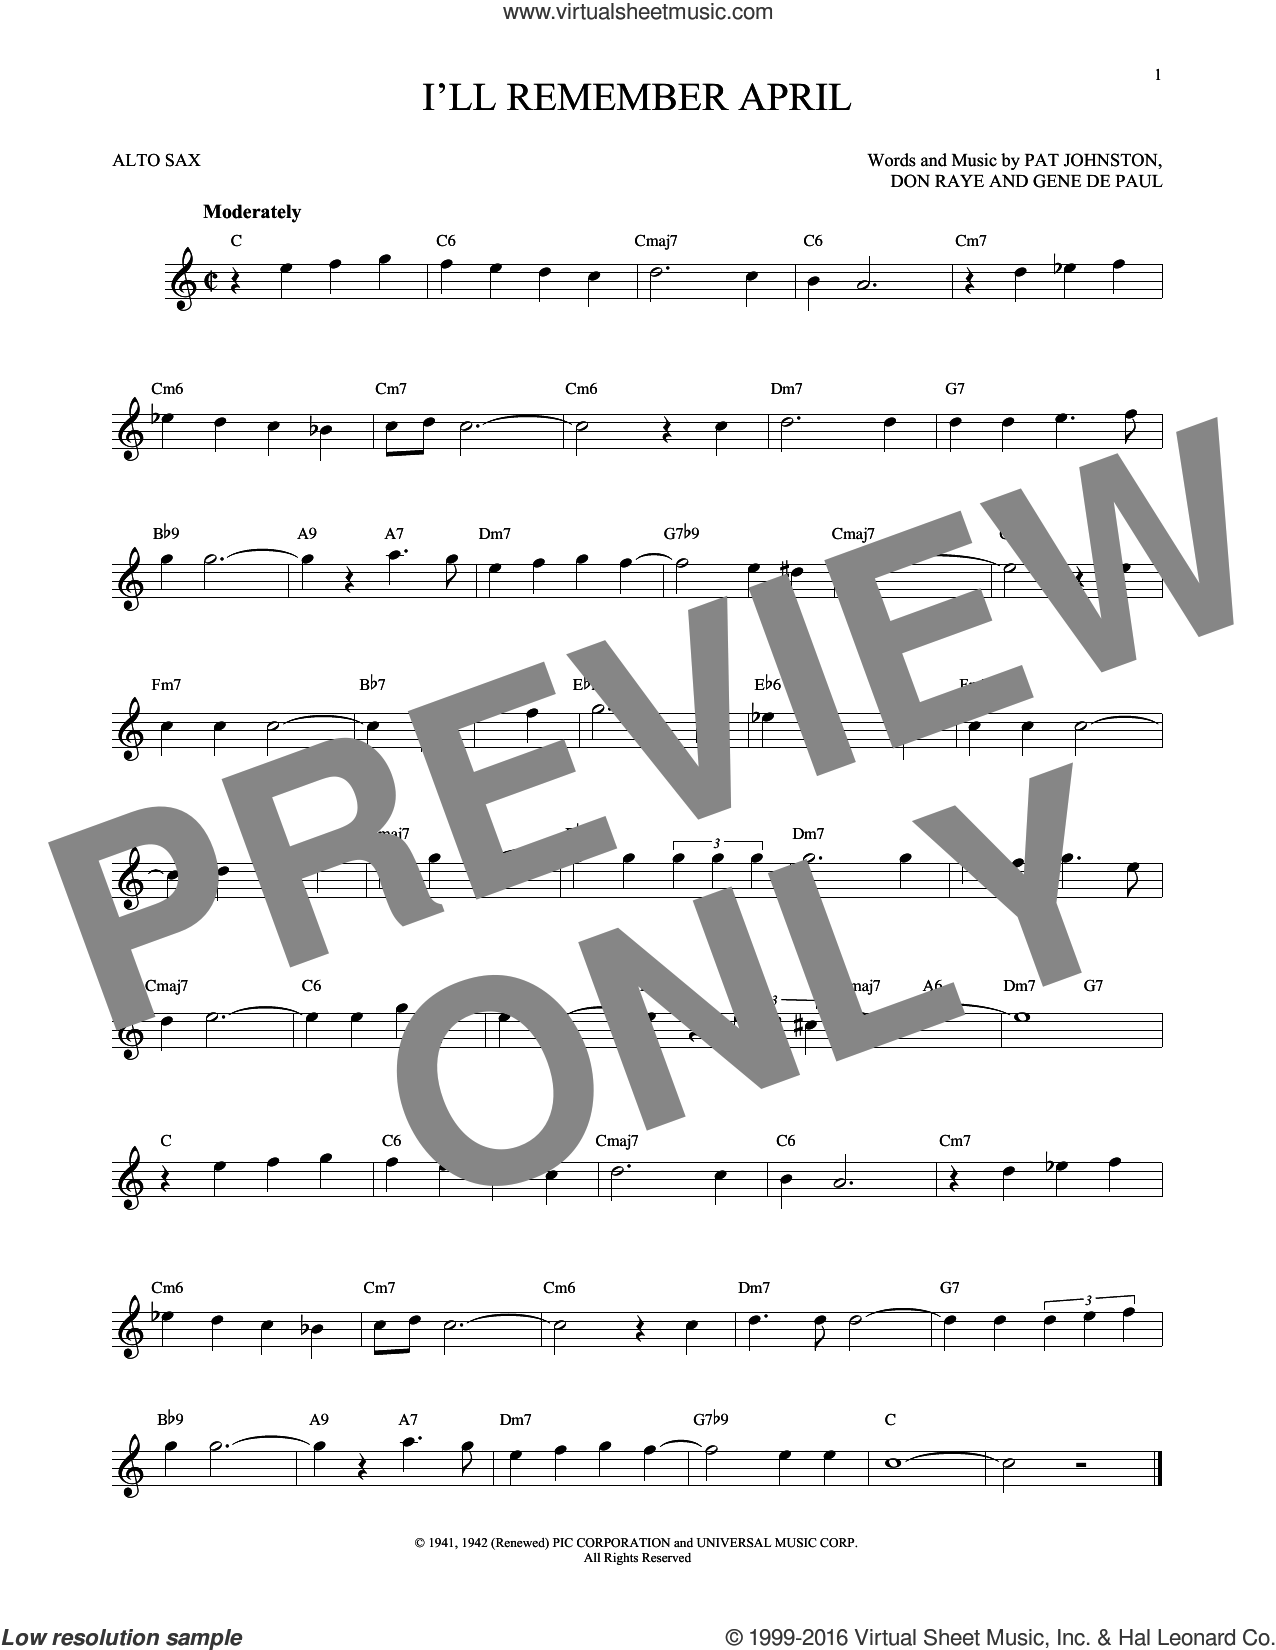 I'll Remember April sheet music for alto saxophone solo by Pat Johnston